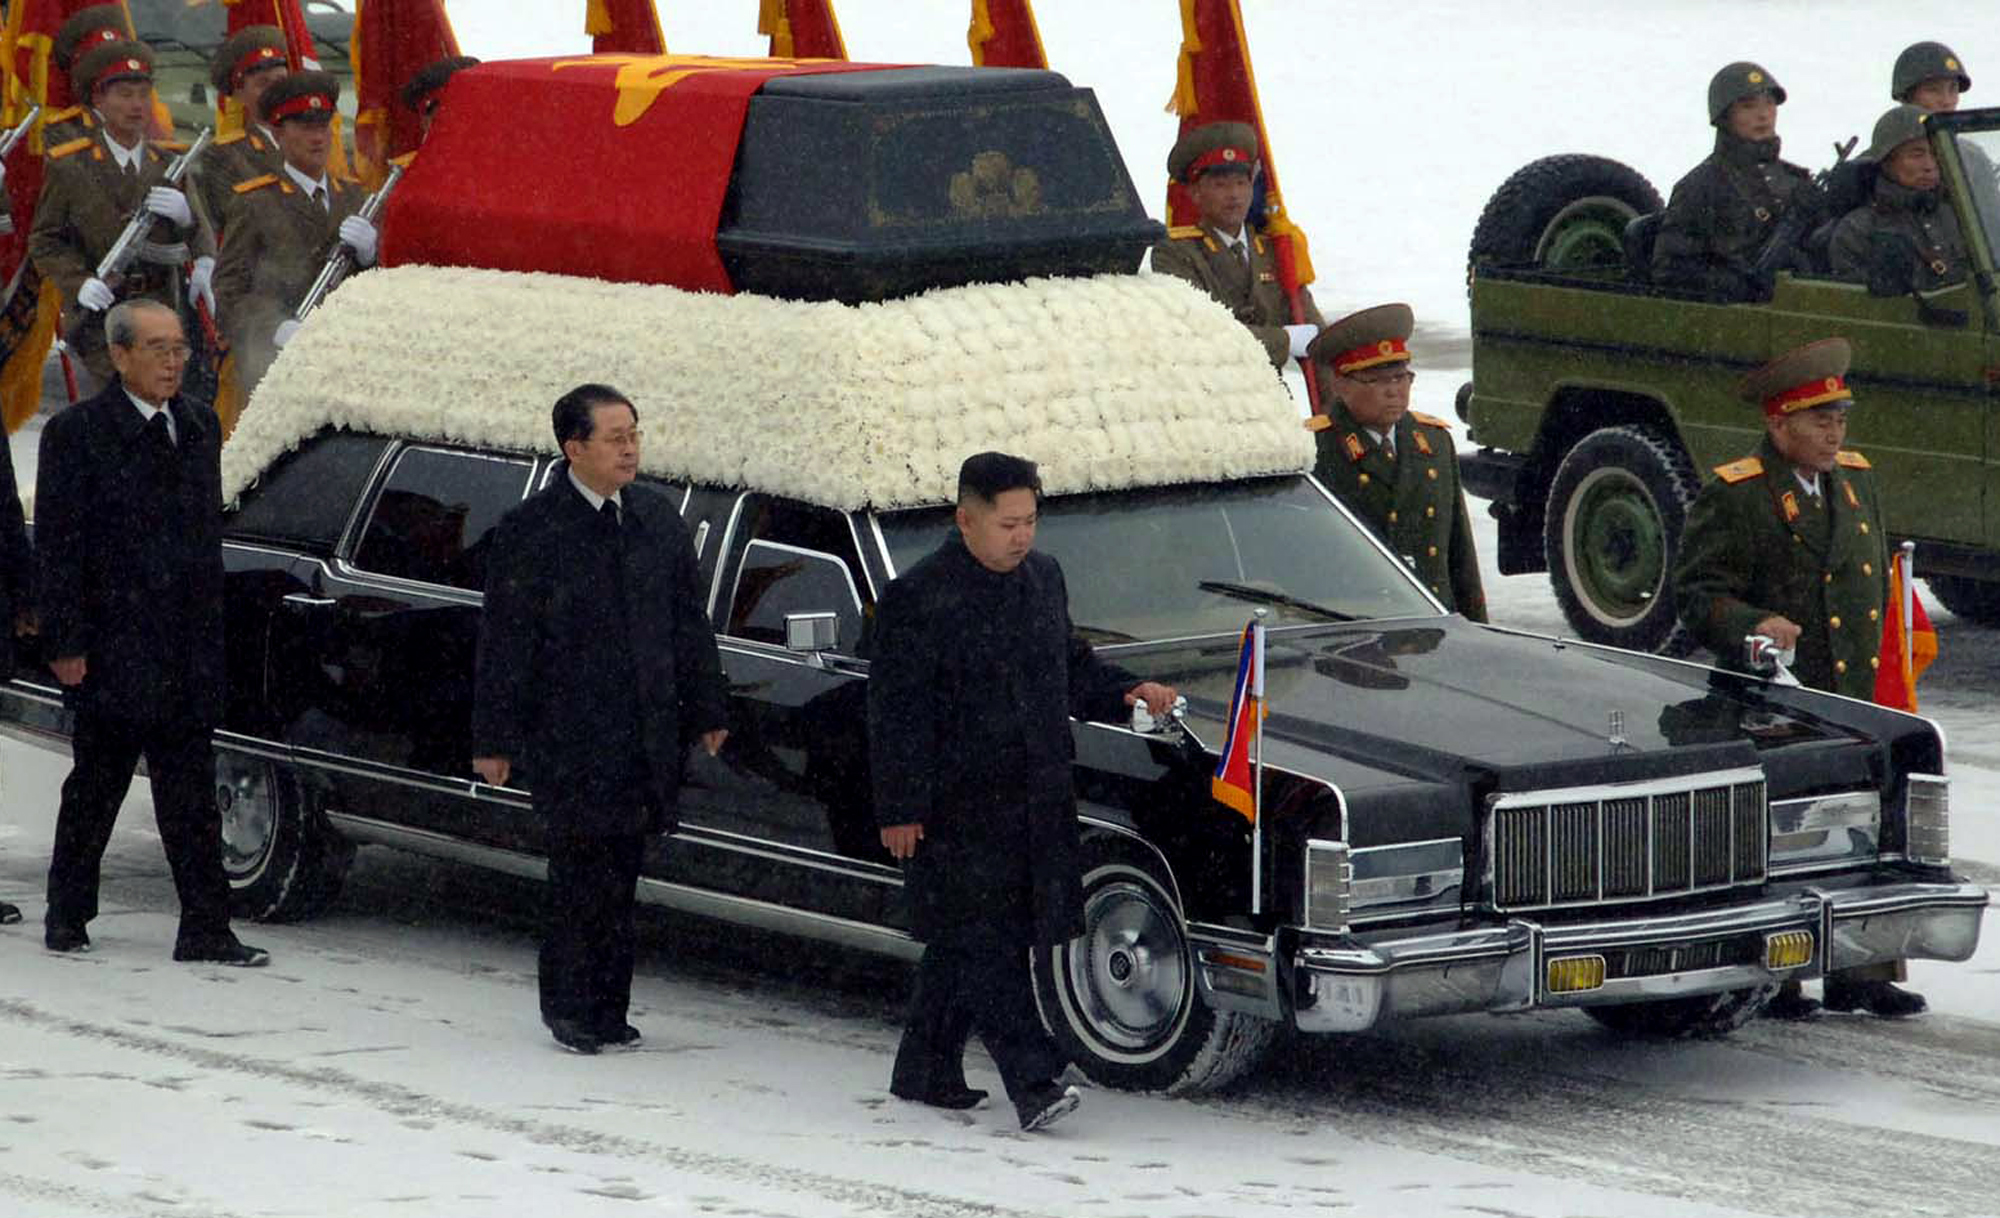 North Korean leader Kim Jong-un walks at the front of his father Kim Jong-il's funeral cortege in 2011.